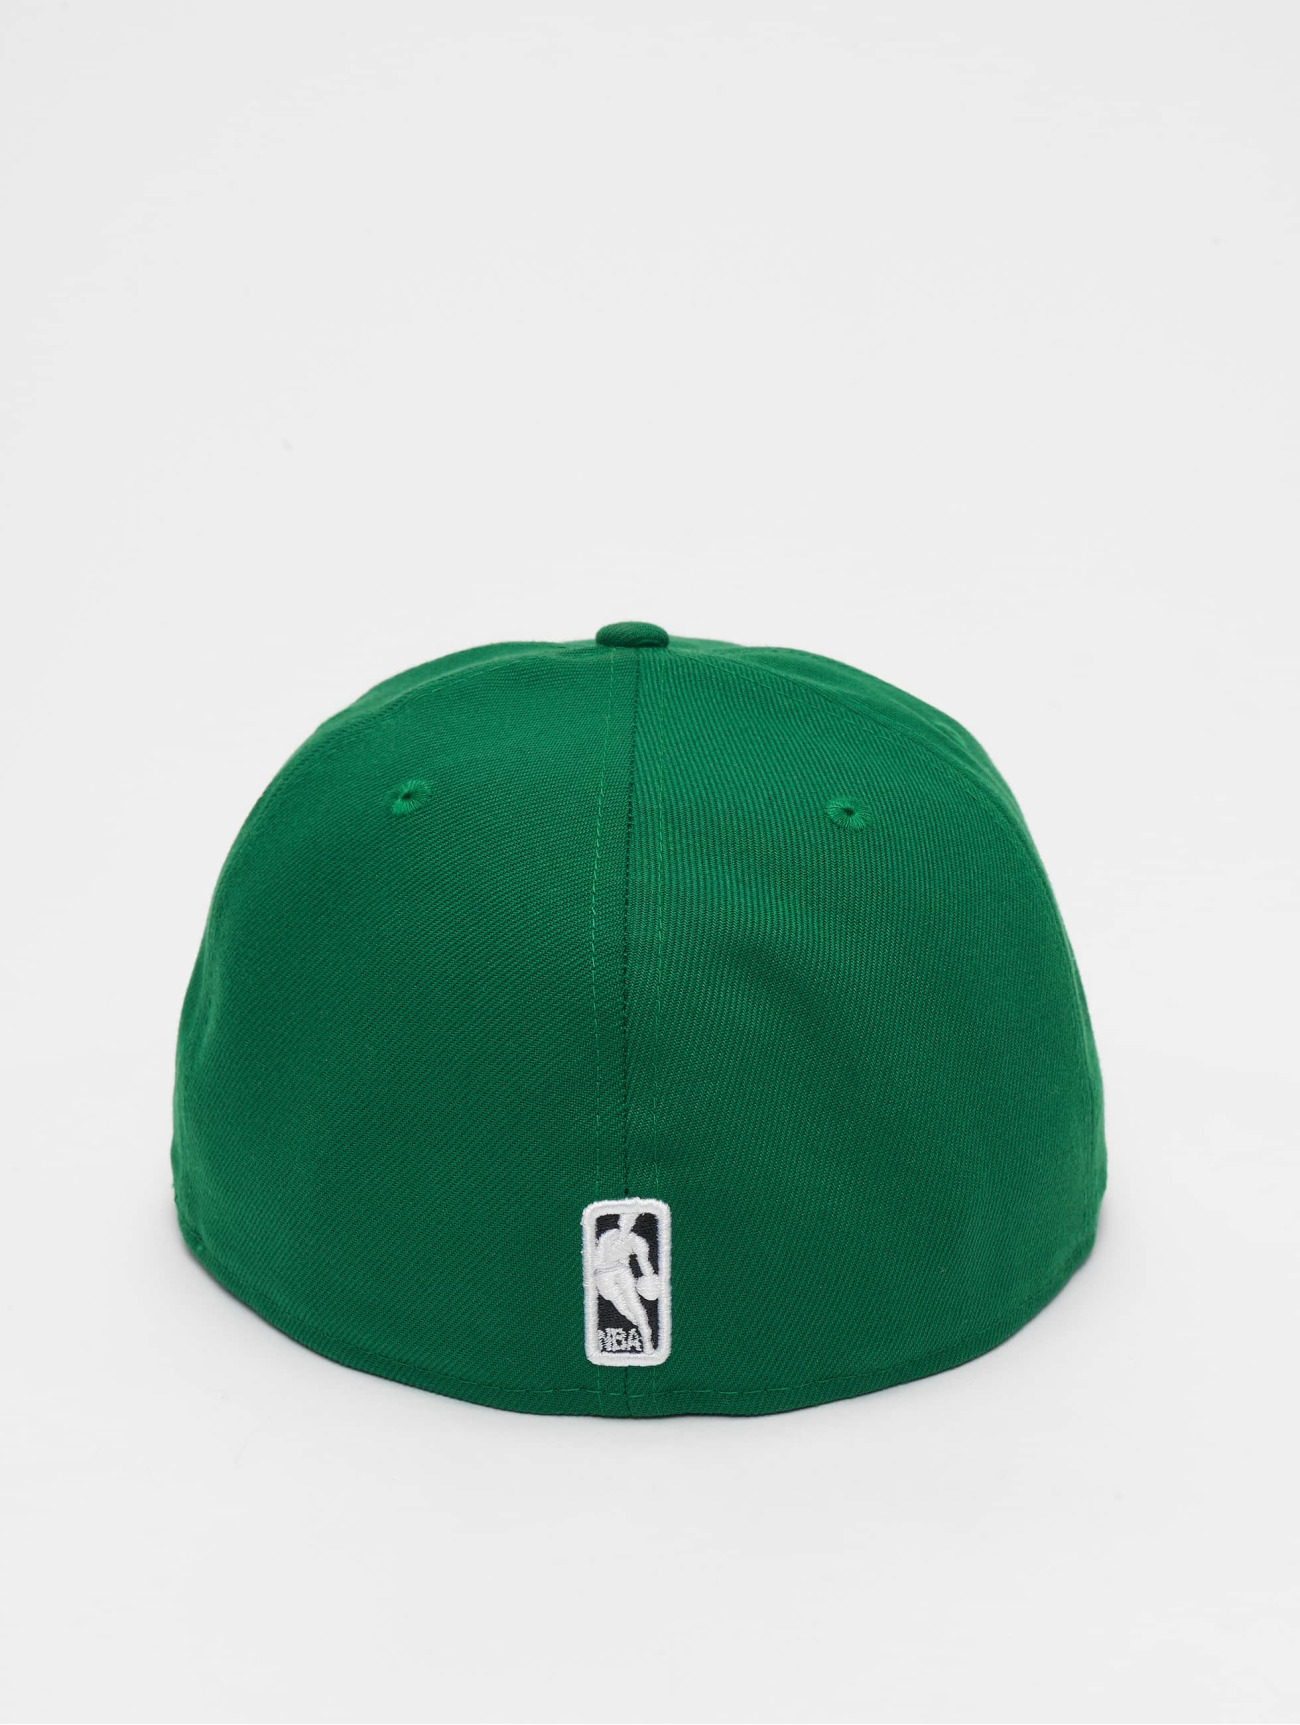 New Era  NBA Basic Boston Celtics 59Fifty  vert  Casquette Fitted  104708 Homme Casquettes